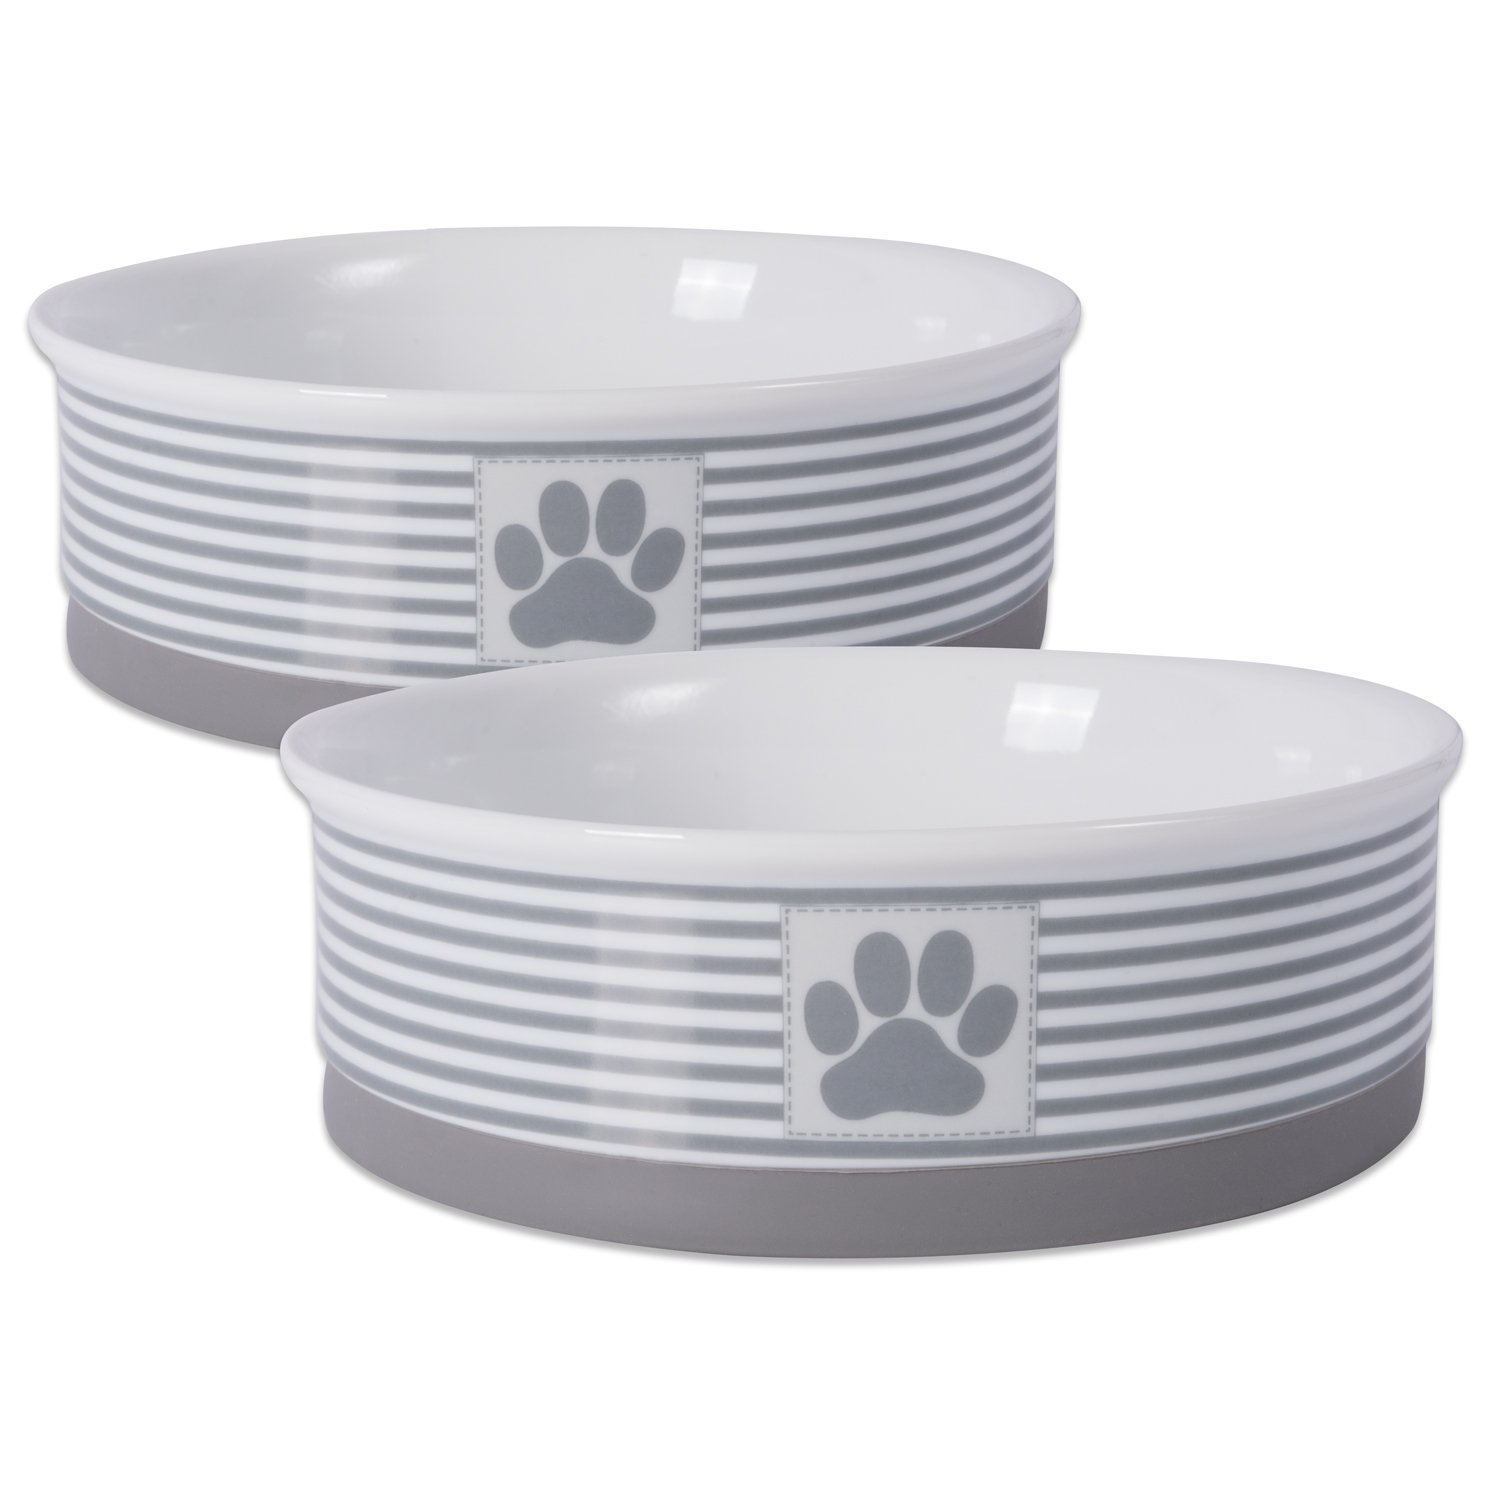 DII Bone Dry Paw Patch & Stripes Ceramic Pet Bowl for Food & Water with Non-Skid Silicone Rim for Dogs and Cats (Large - 7.5'' Dia x 2.4''H) Gray - Set of 2 by Bone Dry